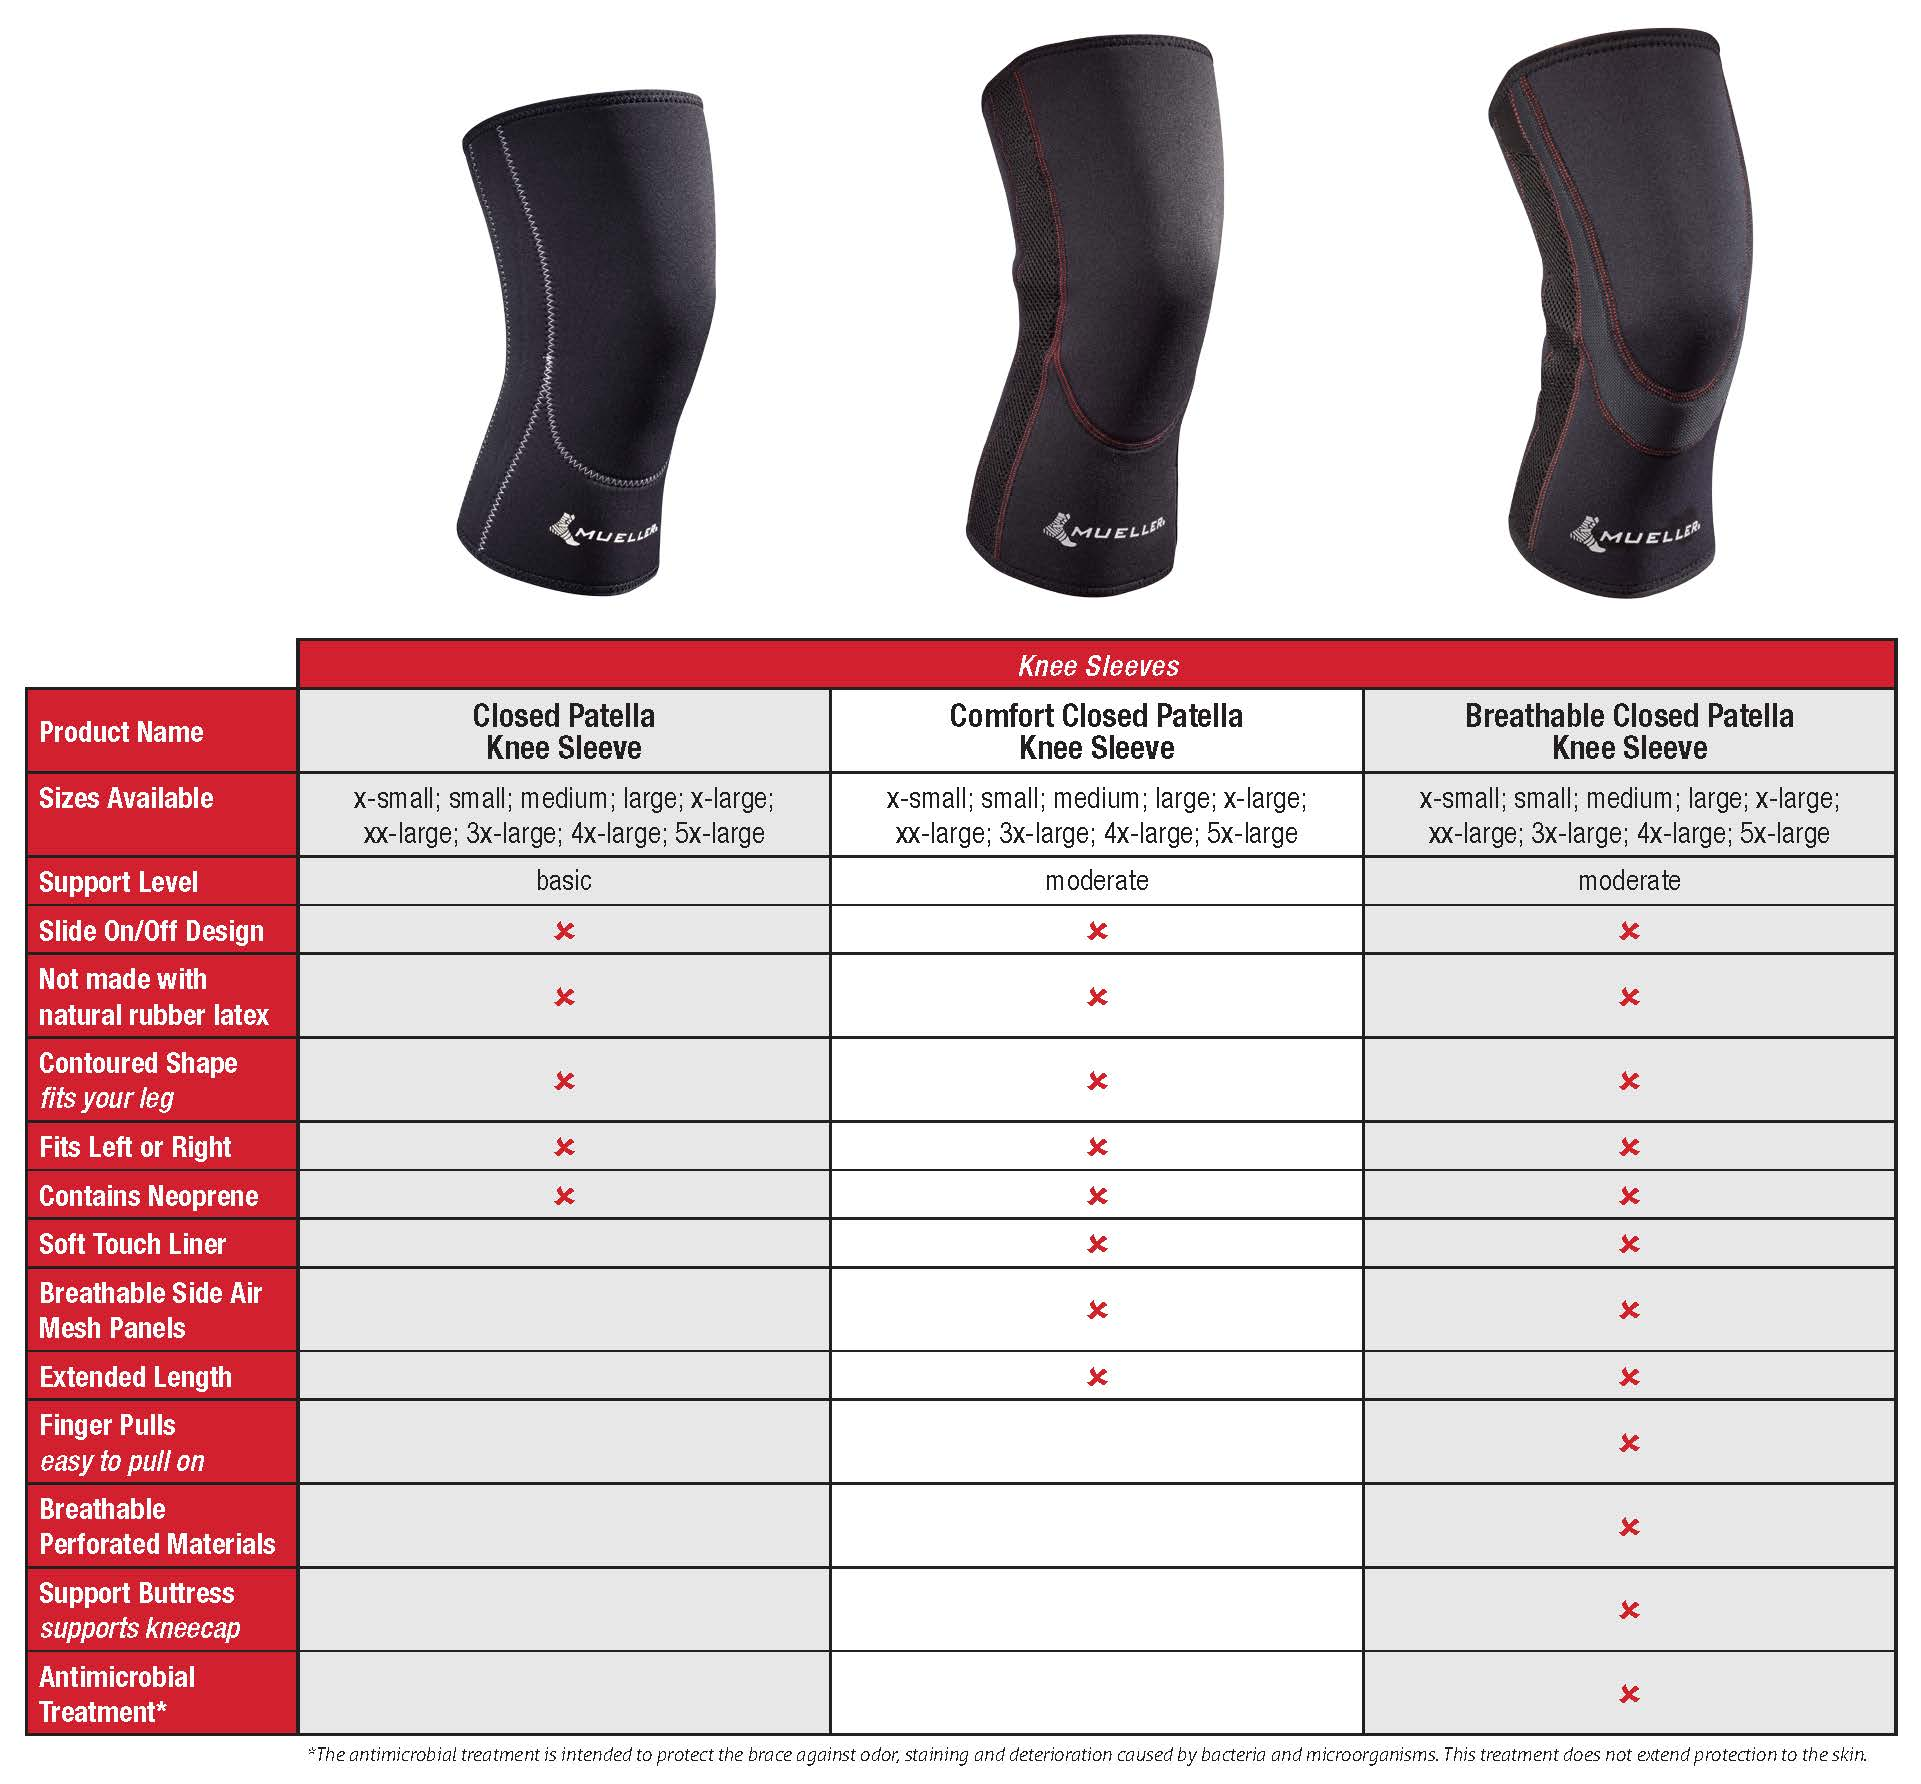 Closed Patella Knee Sleeve Comparison Chart